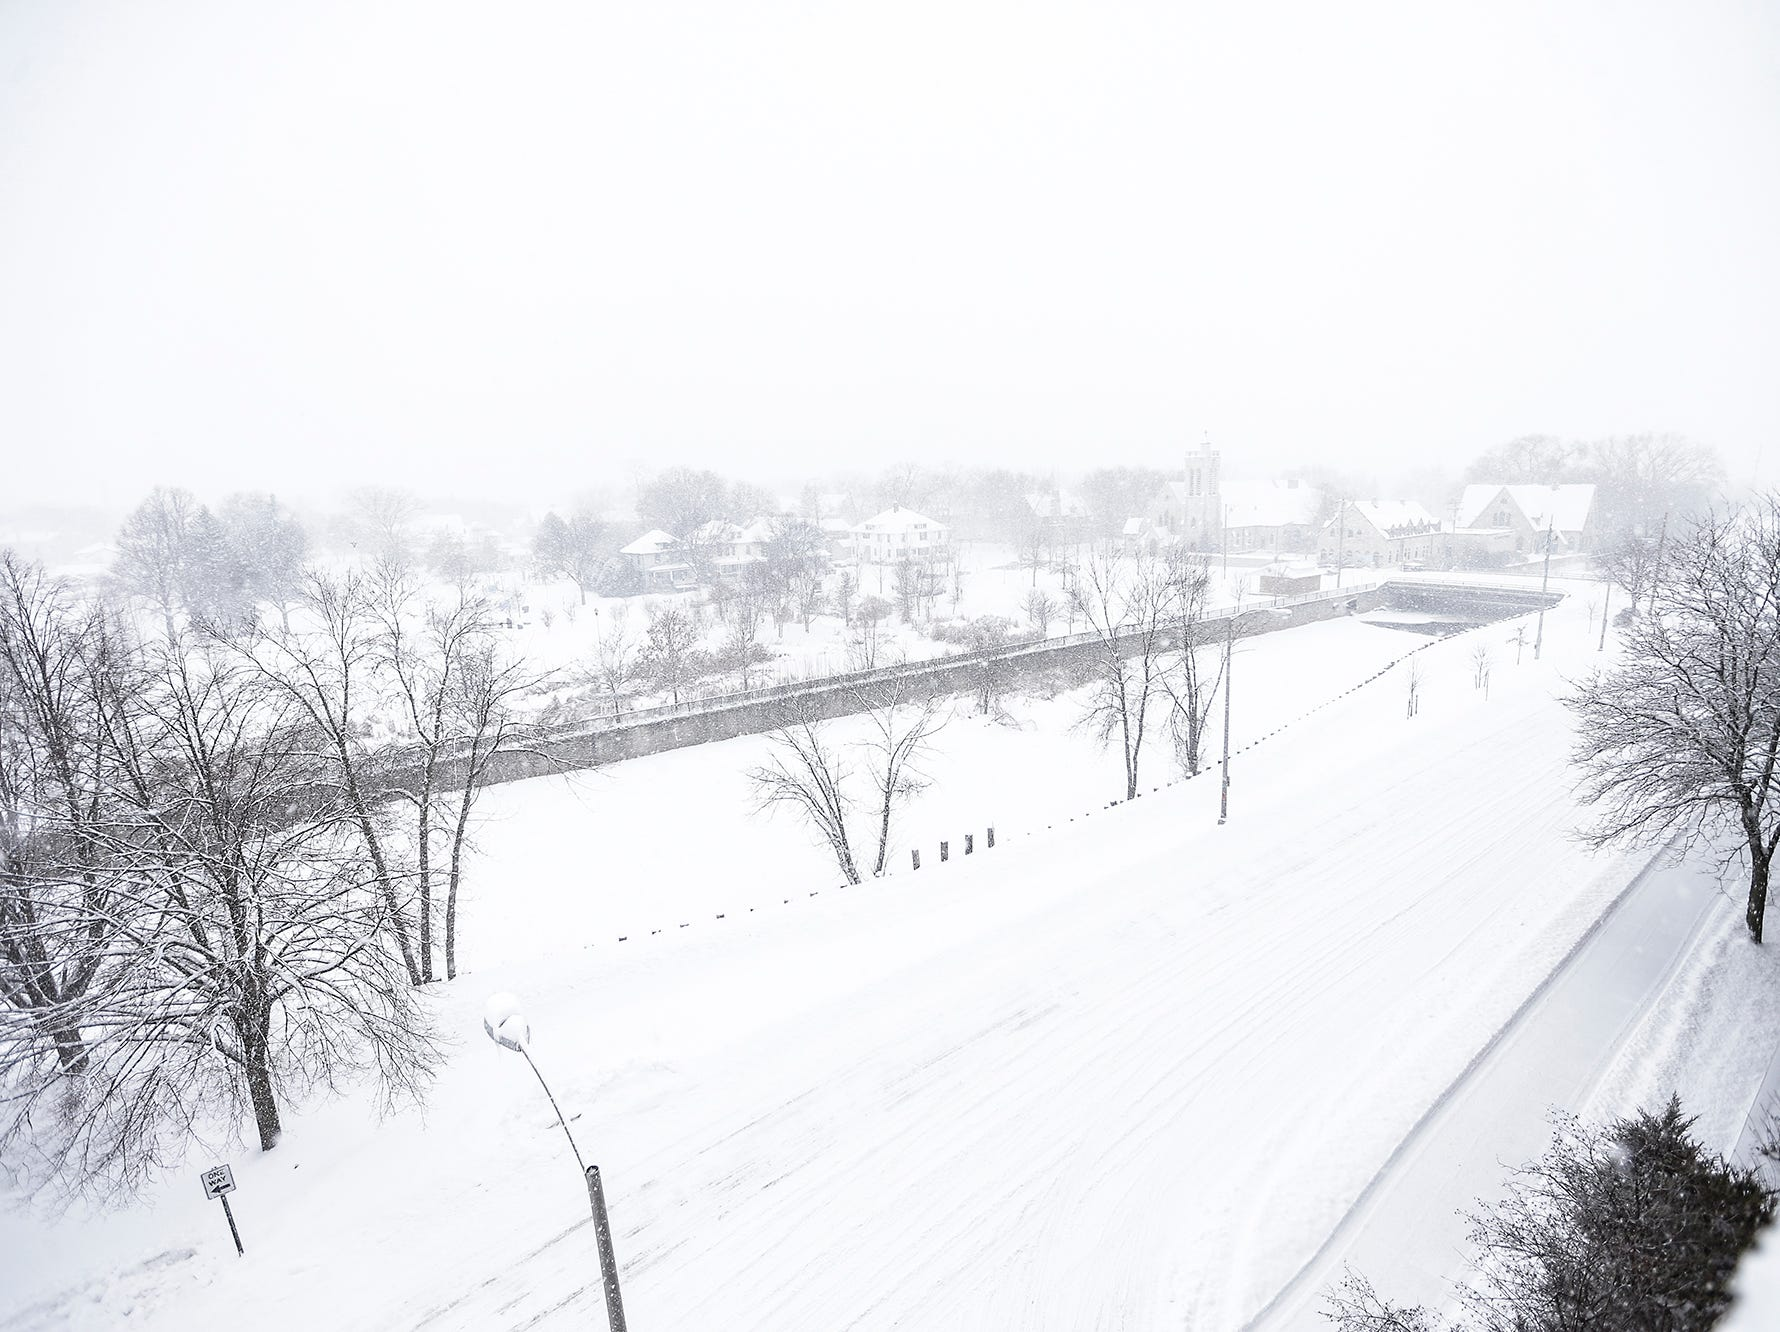 Visibility was reduced during a winter storm Tuesday, February 12, 2019 near downtown Fond du Lac, Wis. A winter storm warning was issued for the area.